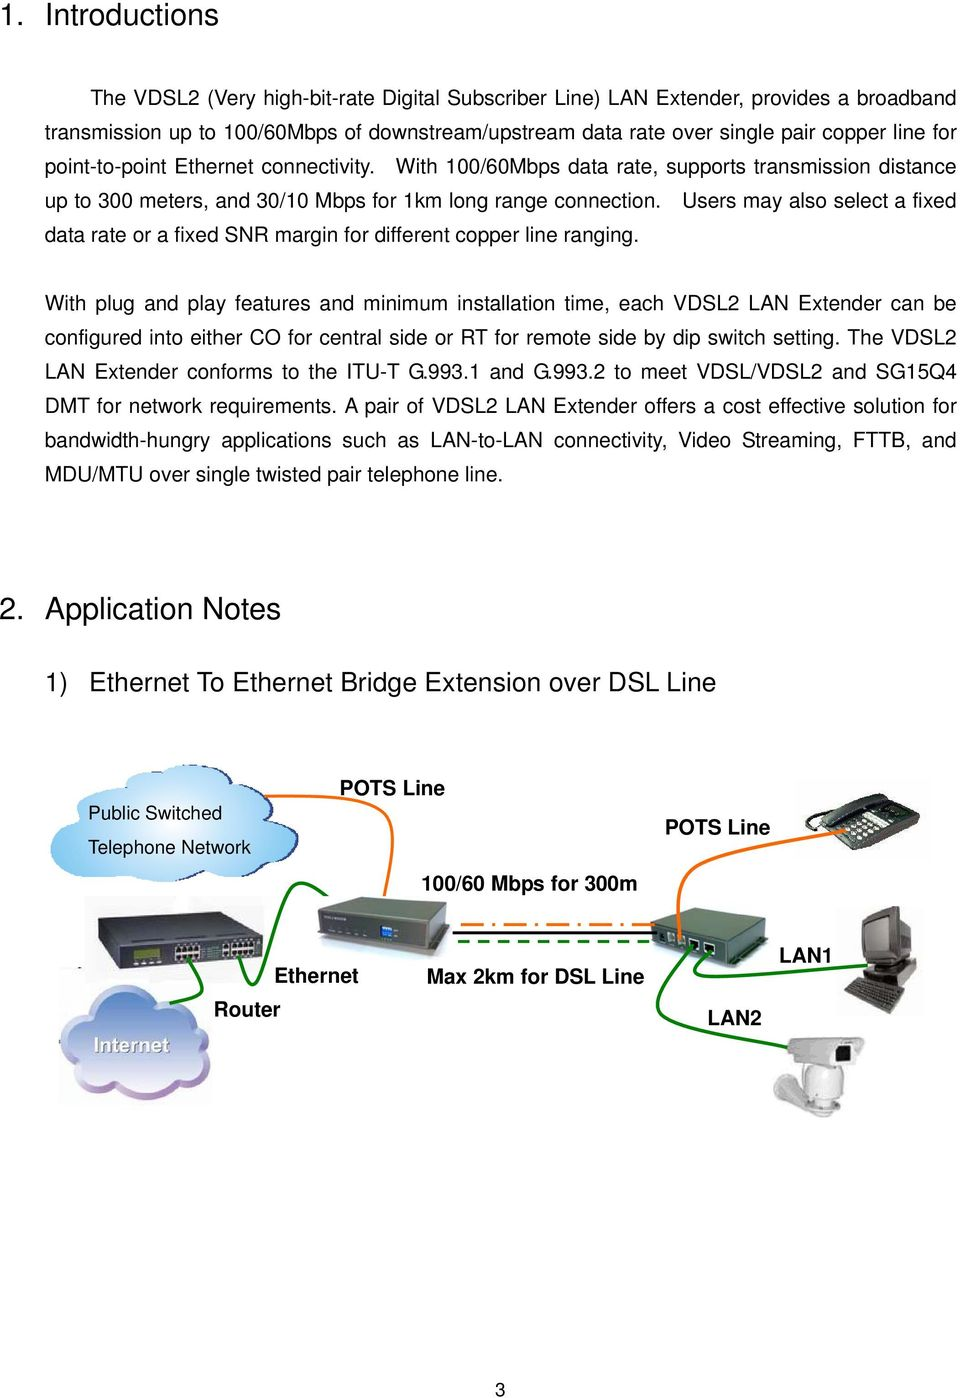 Vdsl2 Lan Extender User Manual Pdf Vdsl Wiring Diagram Users May Also Select A Fixed Data Rate Or Snr Margin For Different Copper